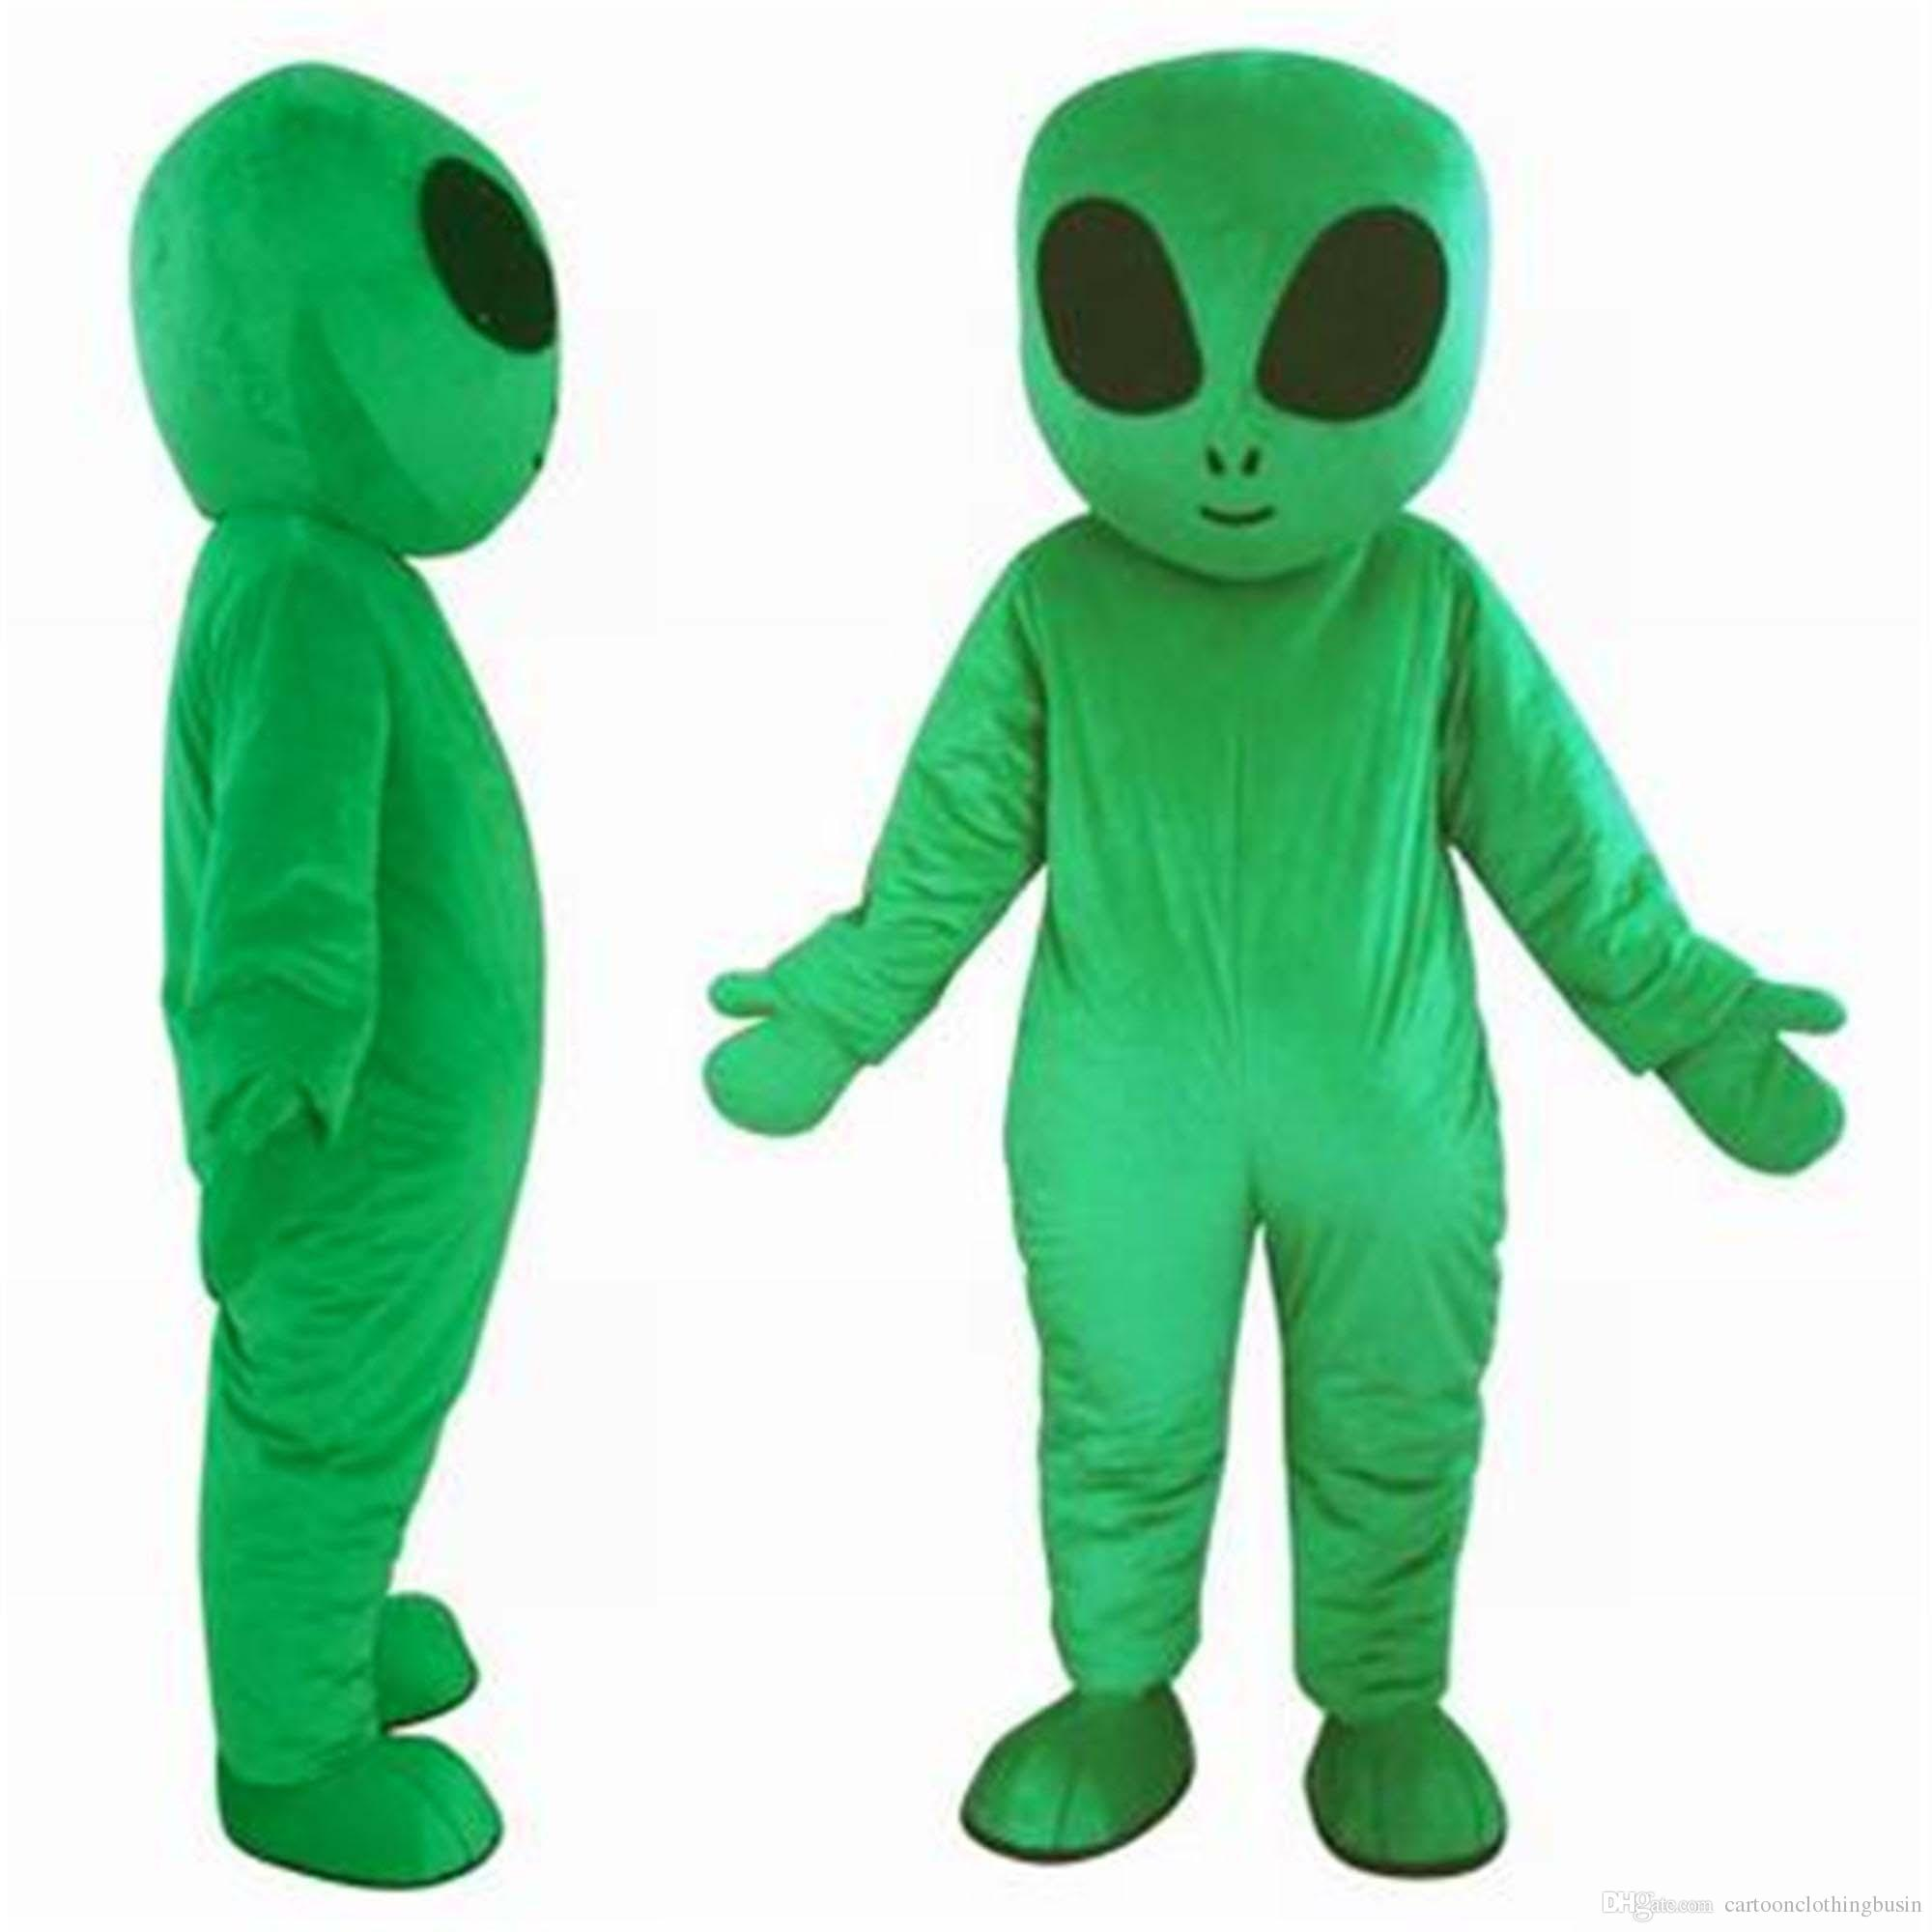 2018 Factory Direct Sale Green Ufo Aliens Mascot Costume For Adults E.T. Alien Mascot Suit For Sell Leprechaun Costumes Costume Sale From ...  sc 1 st  DHgate.com & 2018 Factory Direct Sale Green Ufo Aliens Mascot Costume For Adults ...